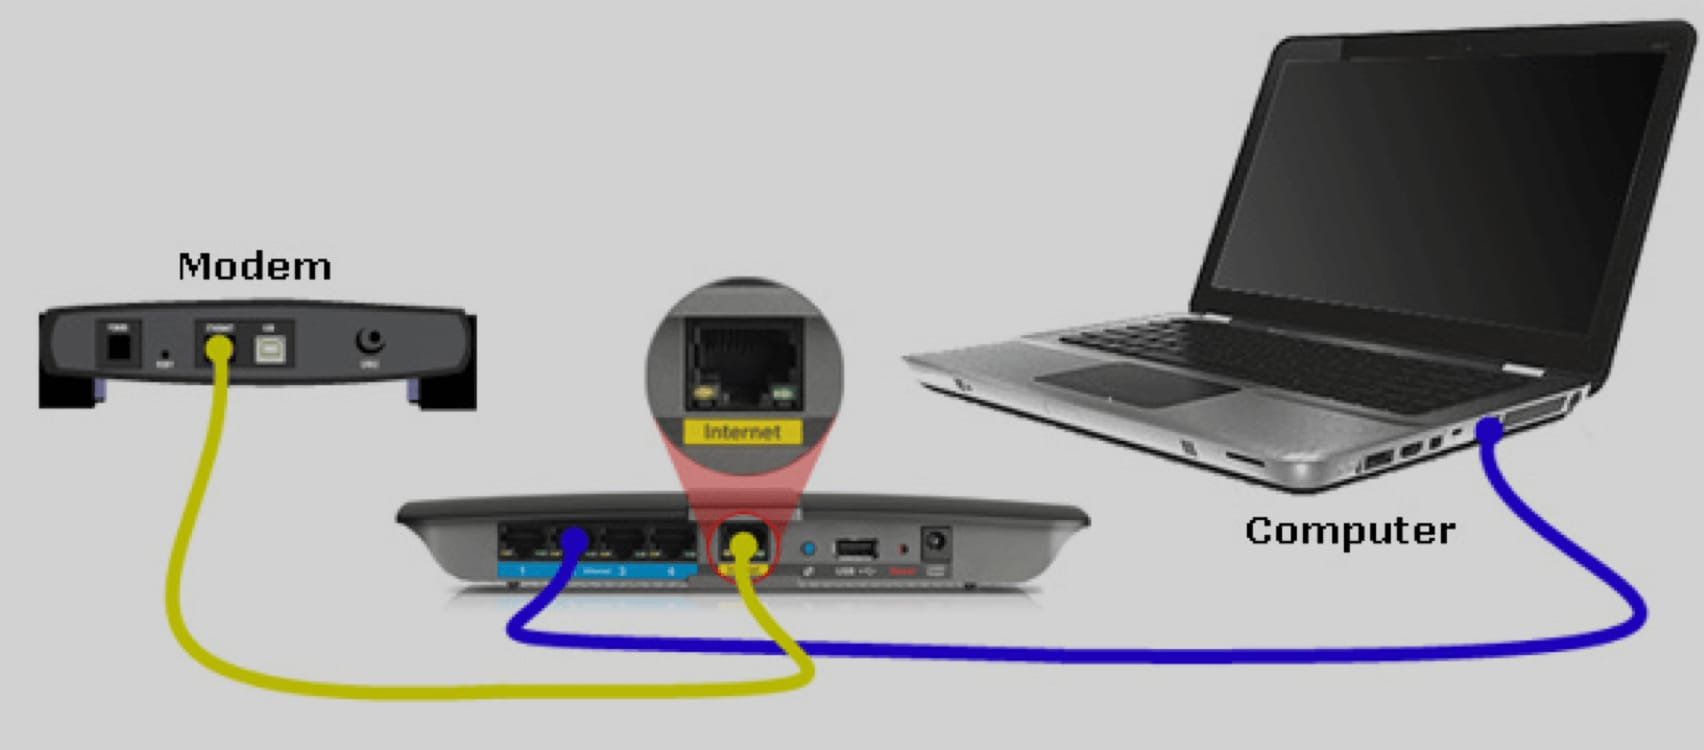 How To Access Linksys Router Login & Linksys Router